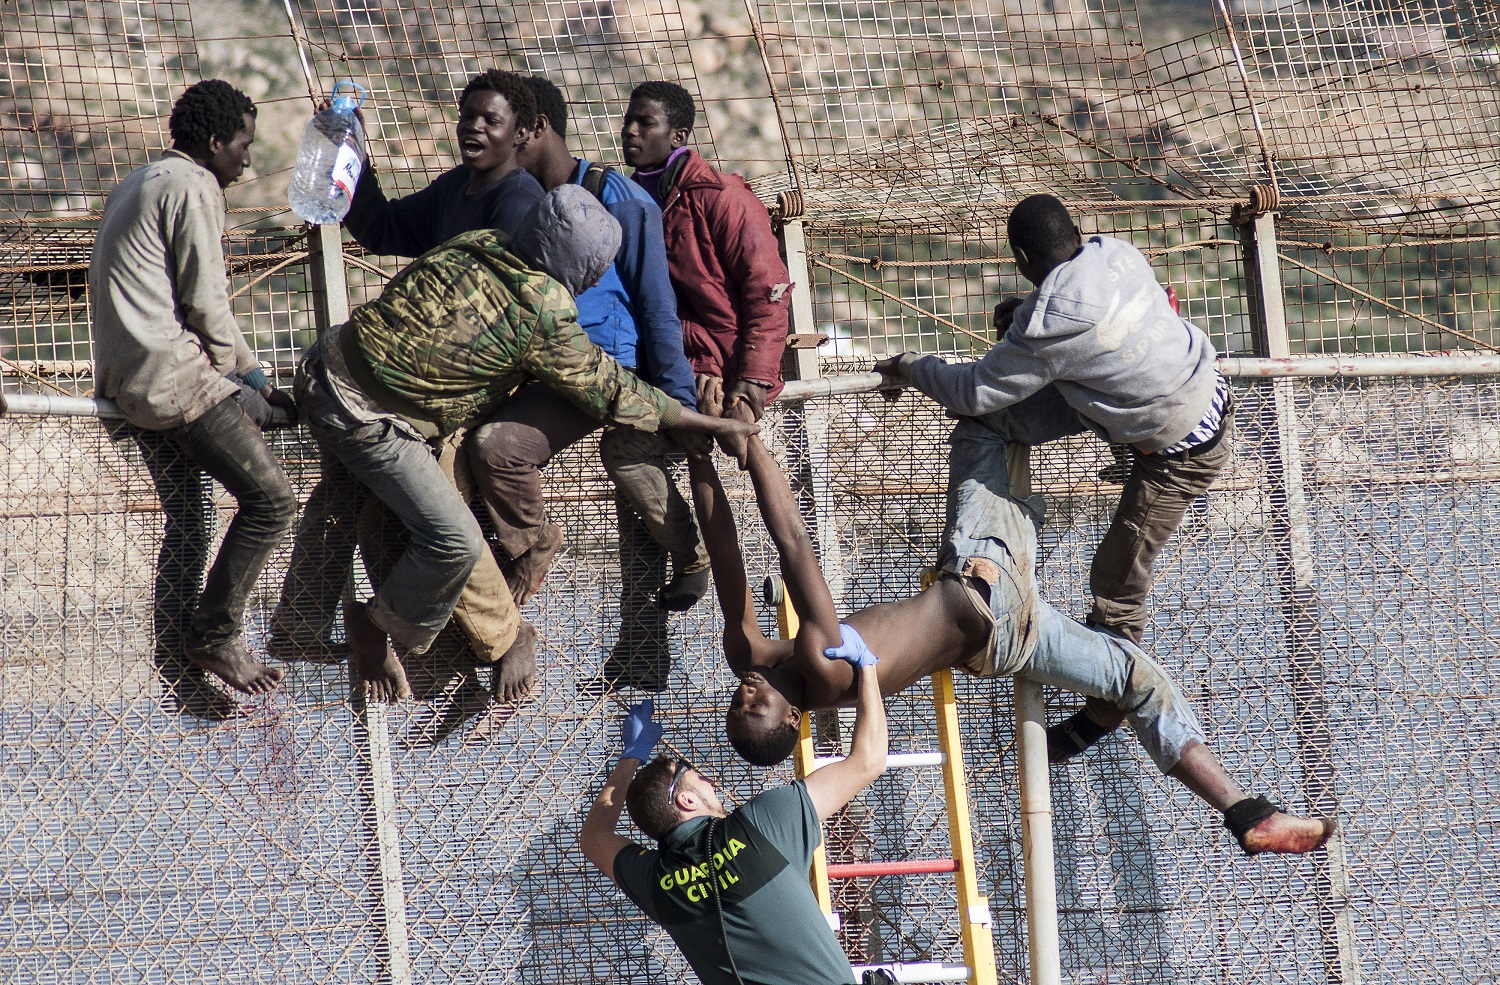 Morocco Deports Hundreds of African Migrants